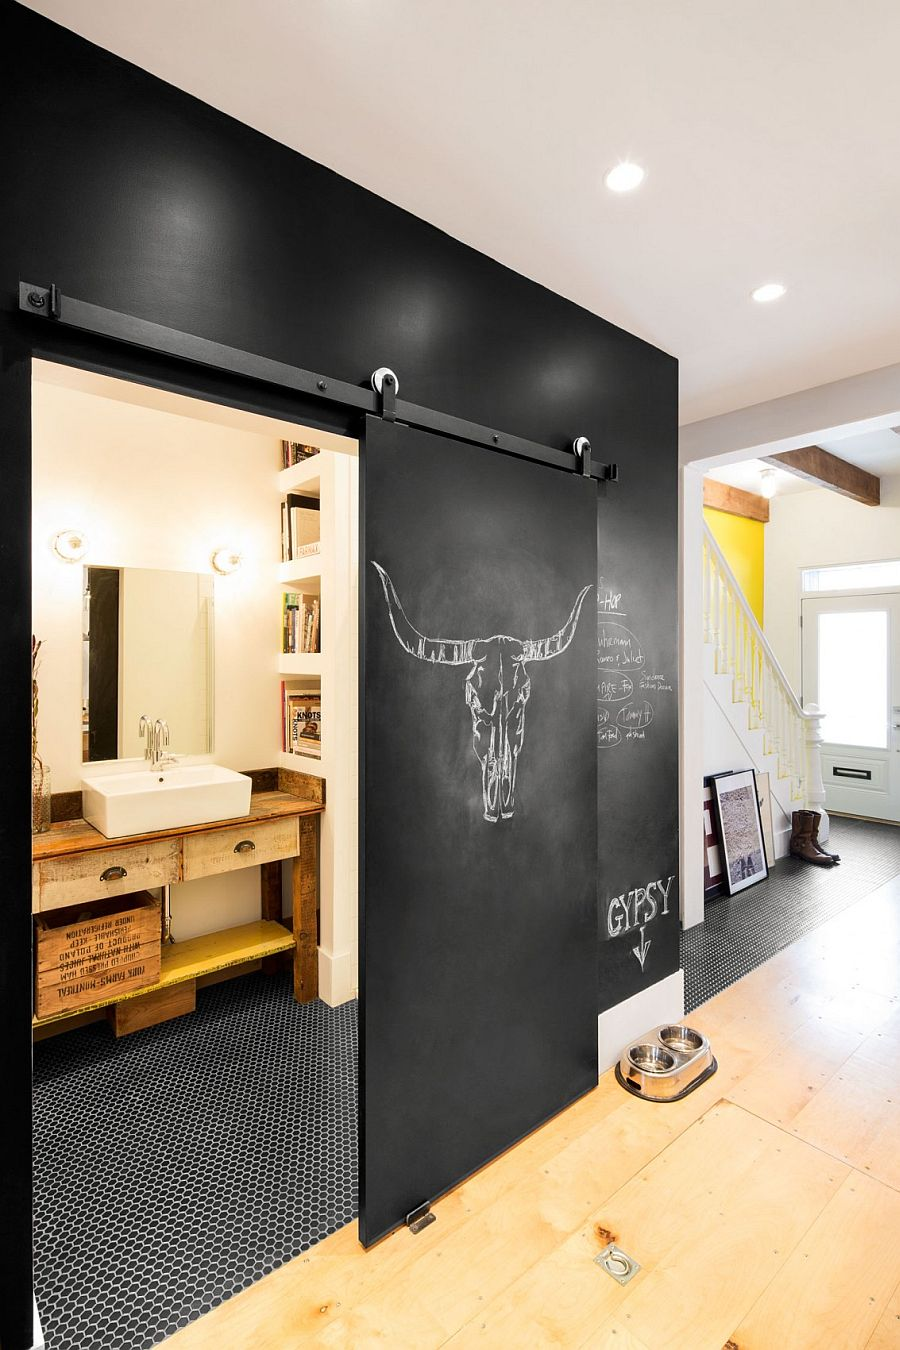 Chalkboard wall and sliding door hide the tiny bathroom on lower level